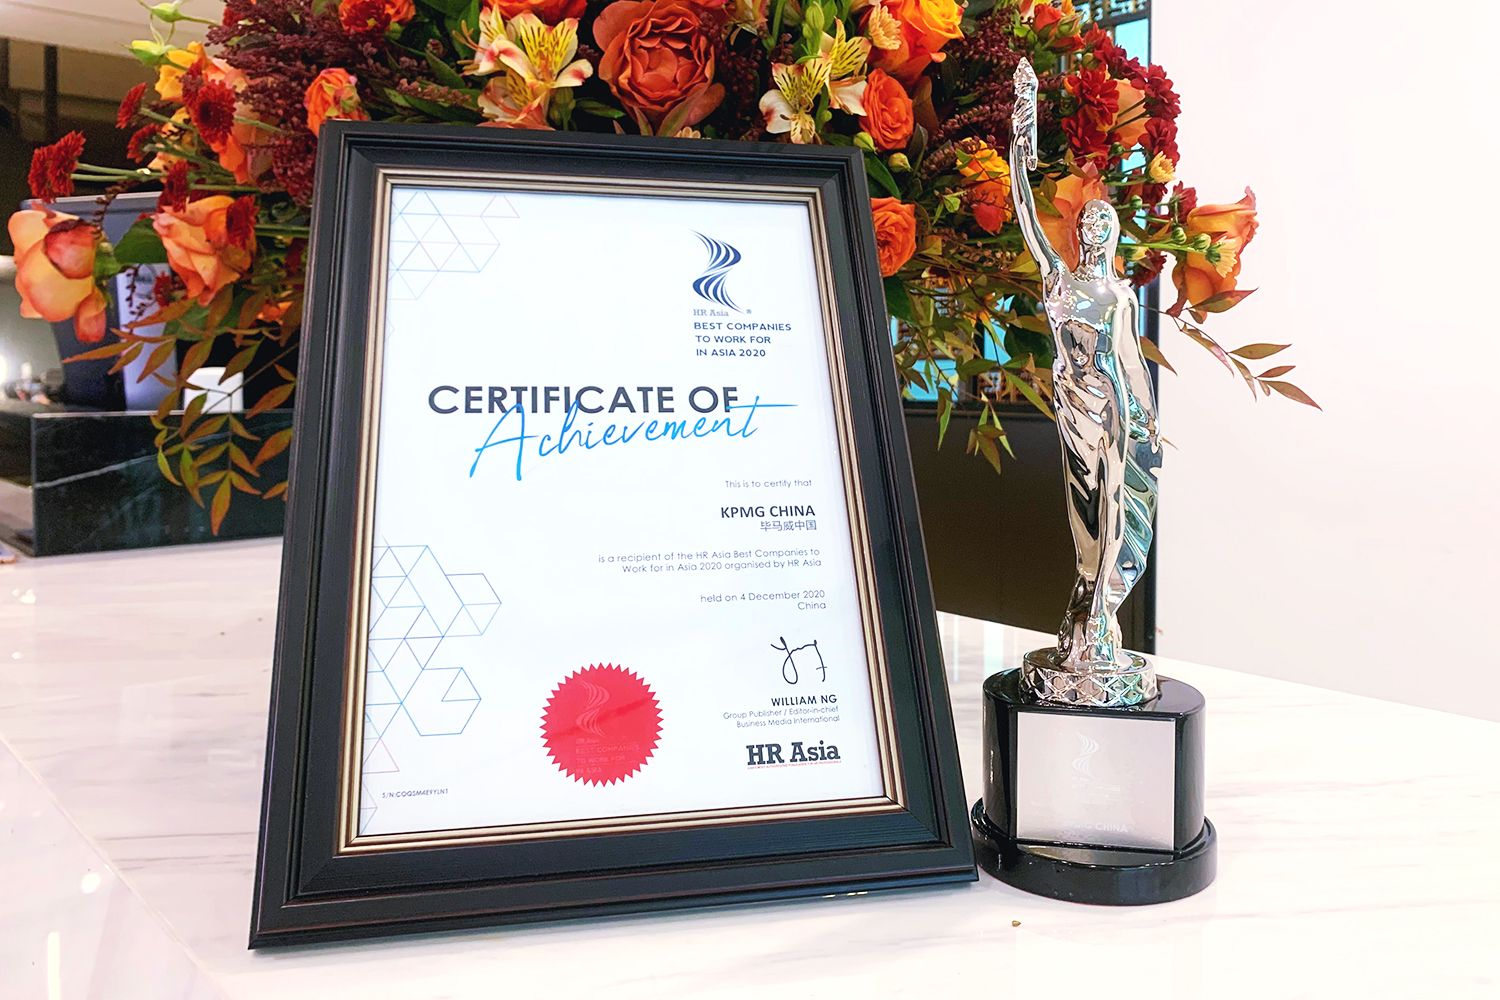 Best Companies to Work For In Asia 2020 award